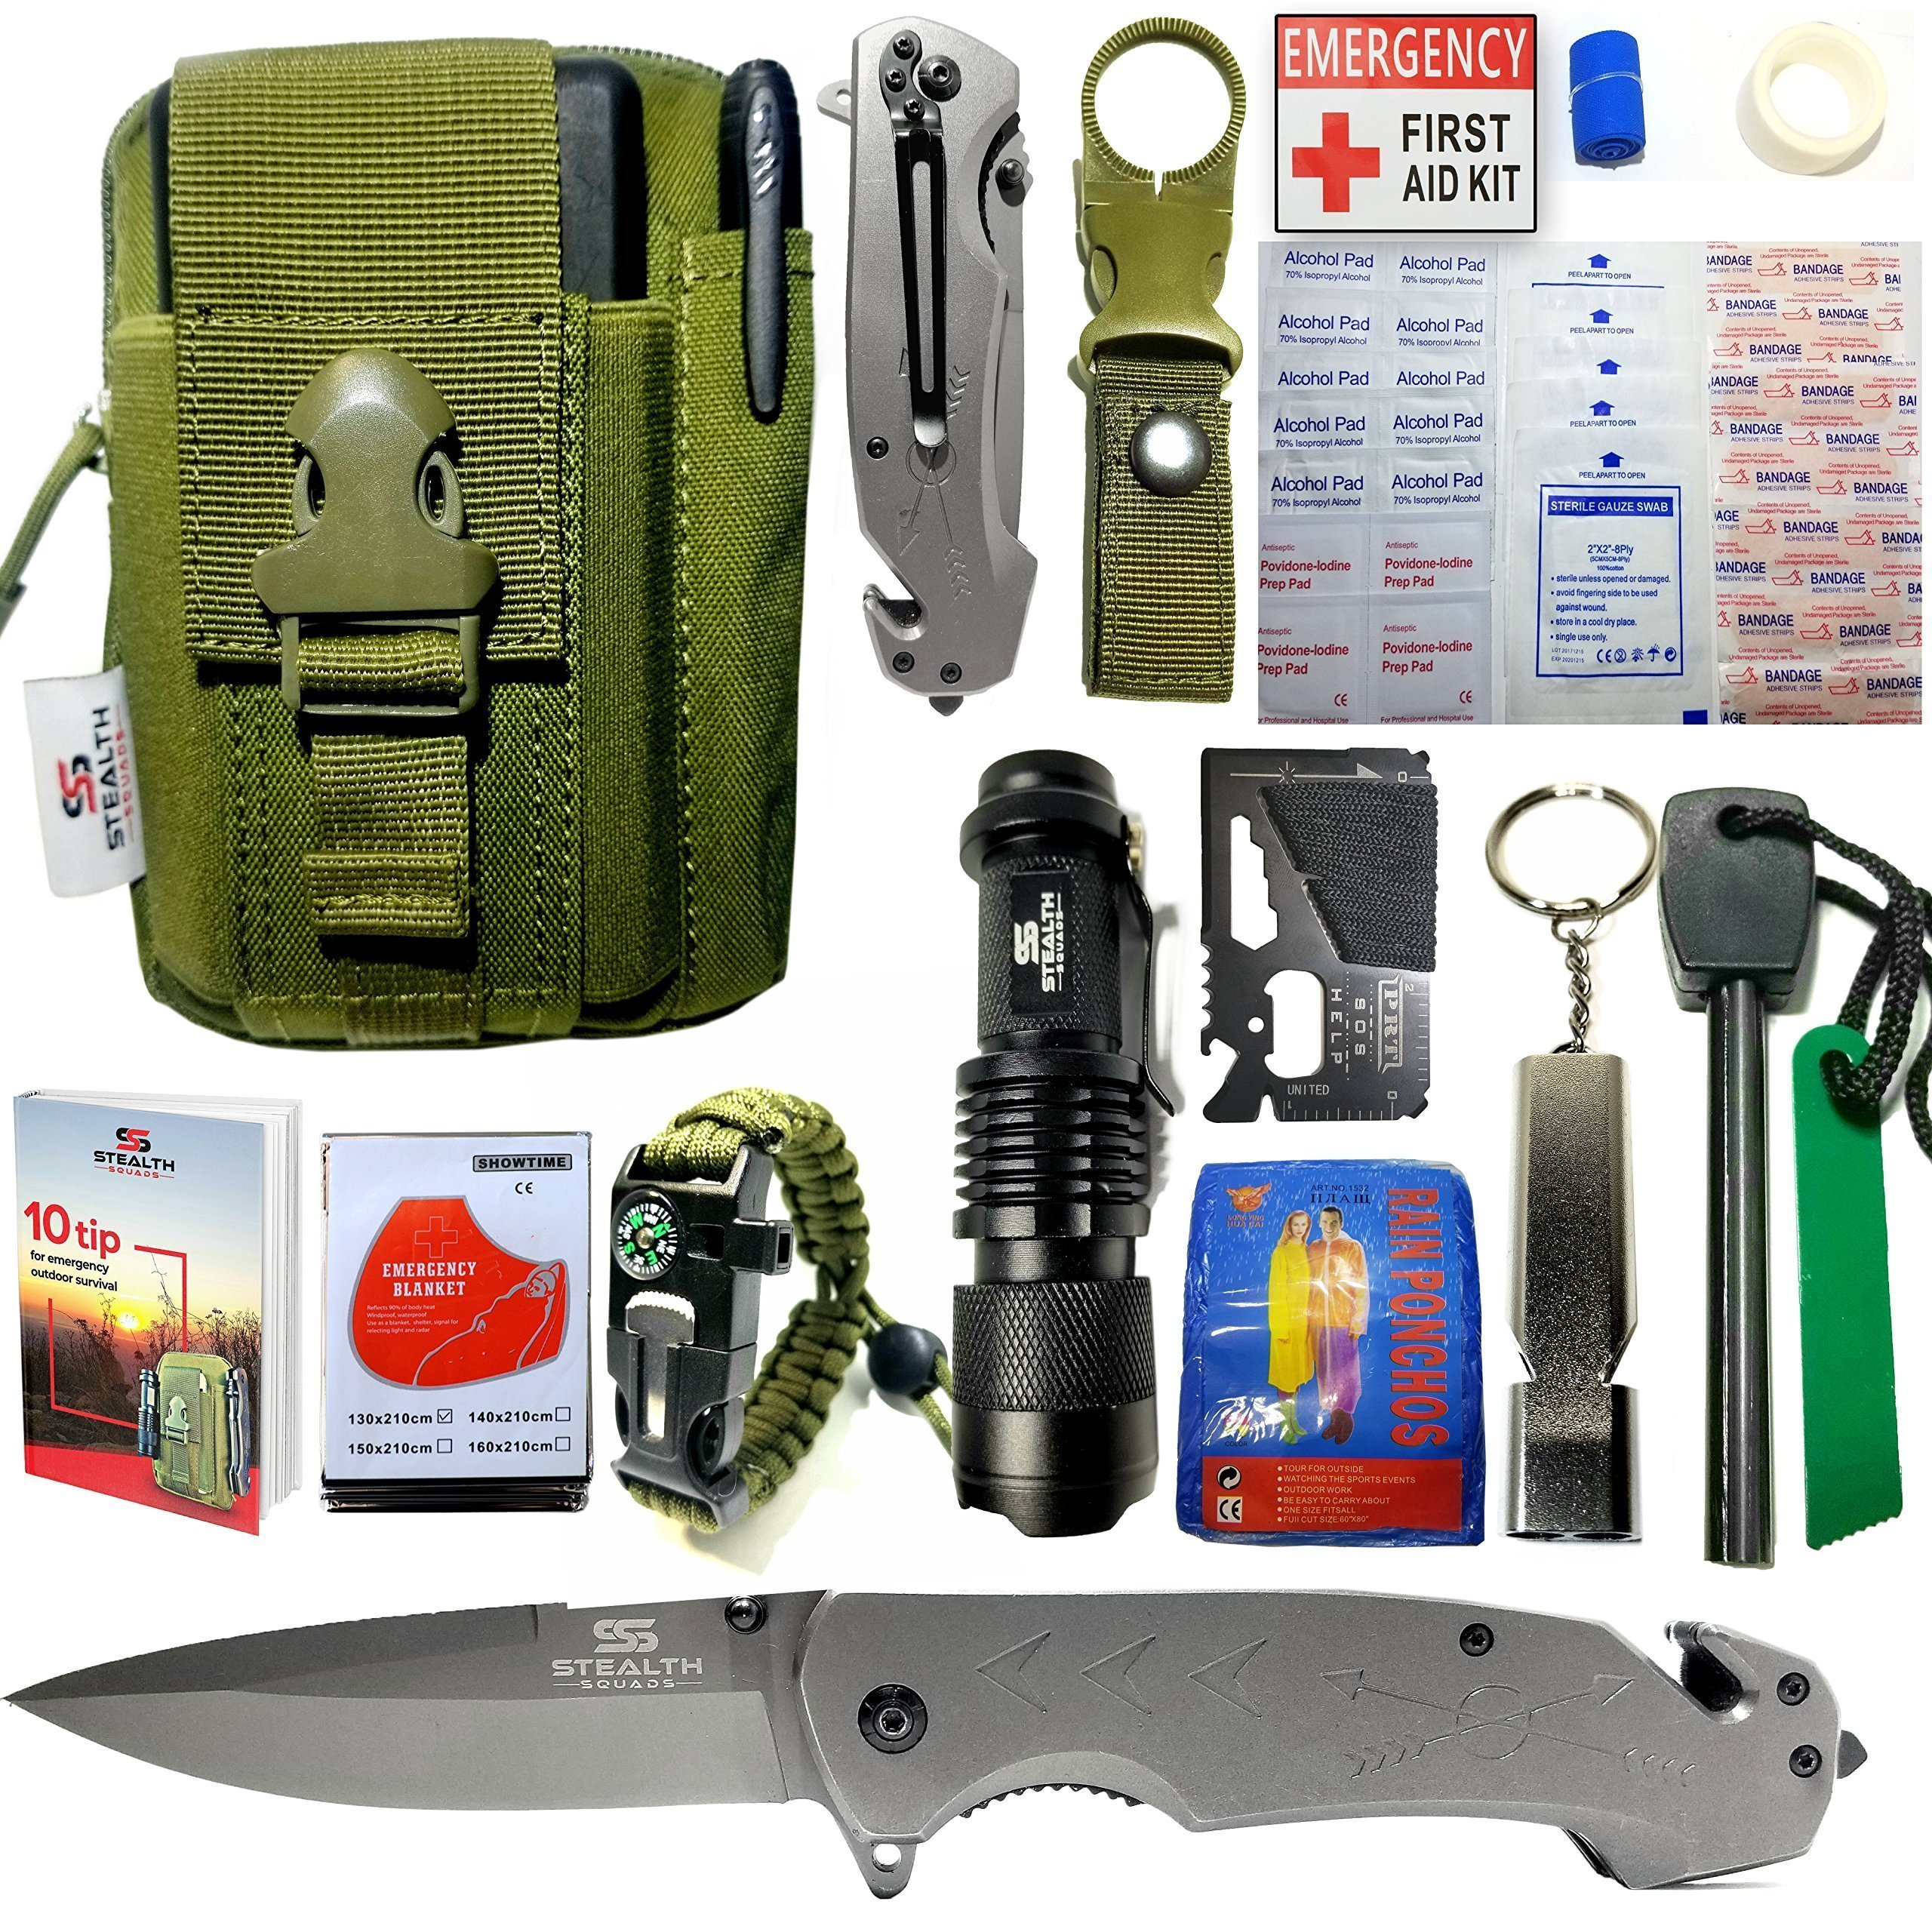 EMERGENCY SURVIVAL KIT 42 in 1 MILITARY POUCH, TACTICAL POCKET KNIFE, FIRE STARTER, BLANKETS, COMPASS BRACELET, FIRST AID KIT, WHISTLE, CAMPING, HIKING, HUNTING, PREMIUM OUTDOOR GEAR w/ BONUS E-BOOK